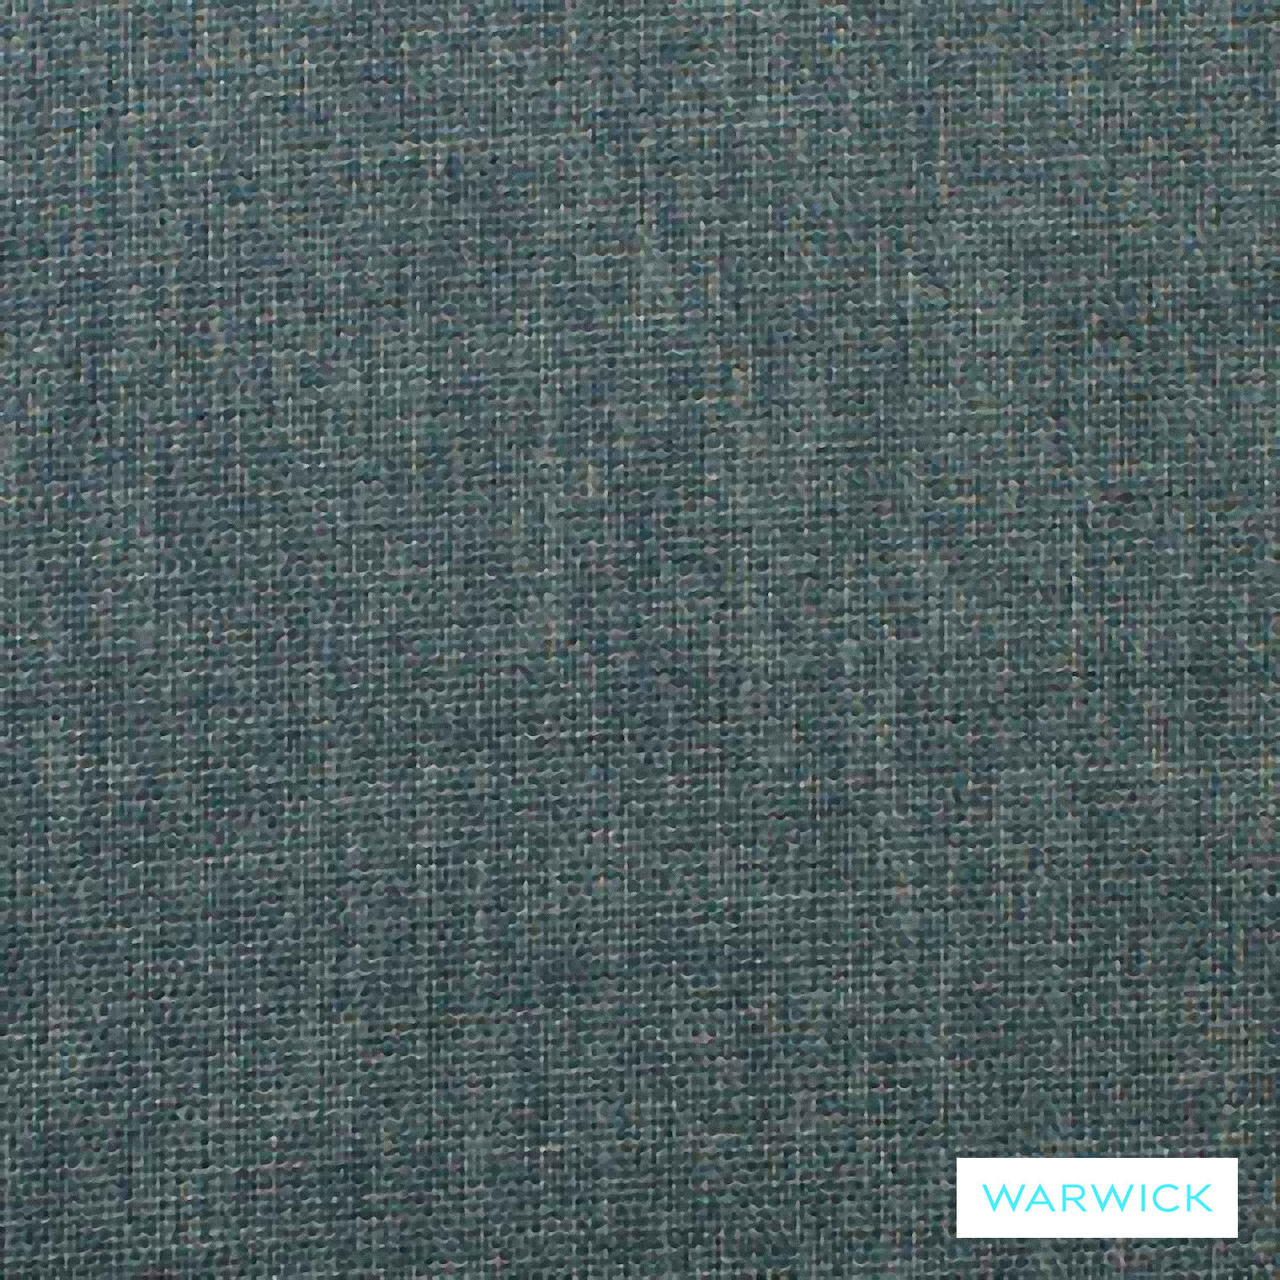 Warwick Keylargo Teal  | Upholstery Fabric - Blue, Plain, Synthetic, Turquoise, Teal, Washable, Commercial Use, Halo, Standard Width